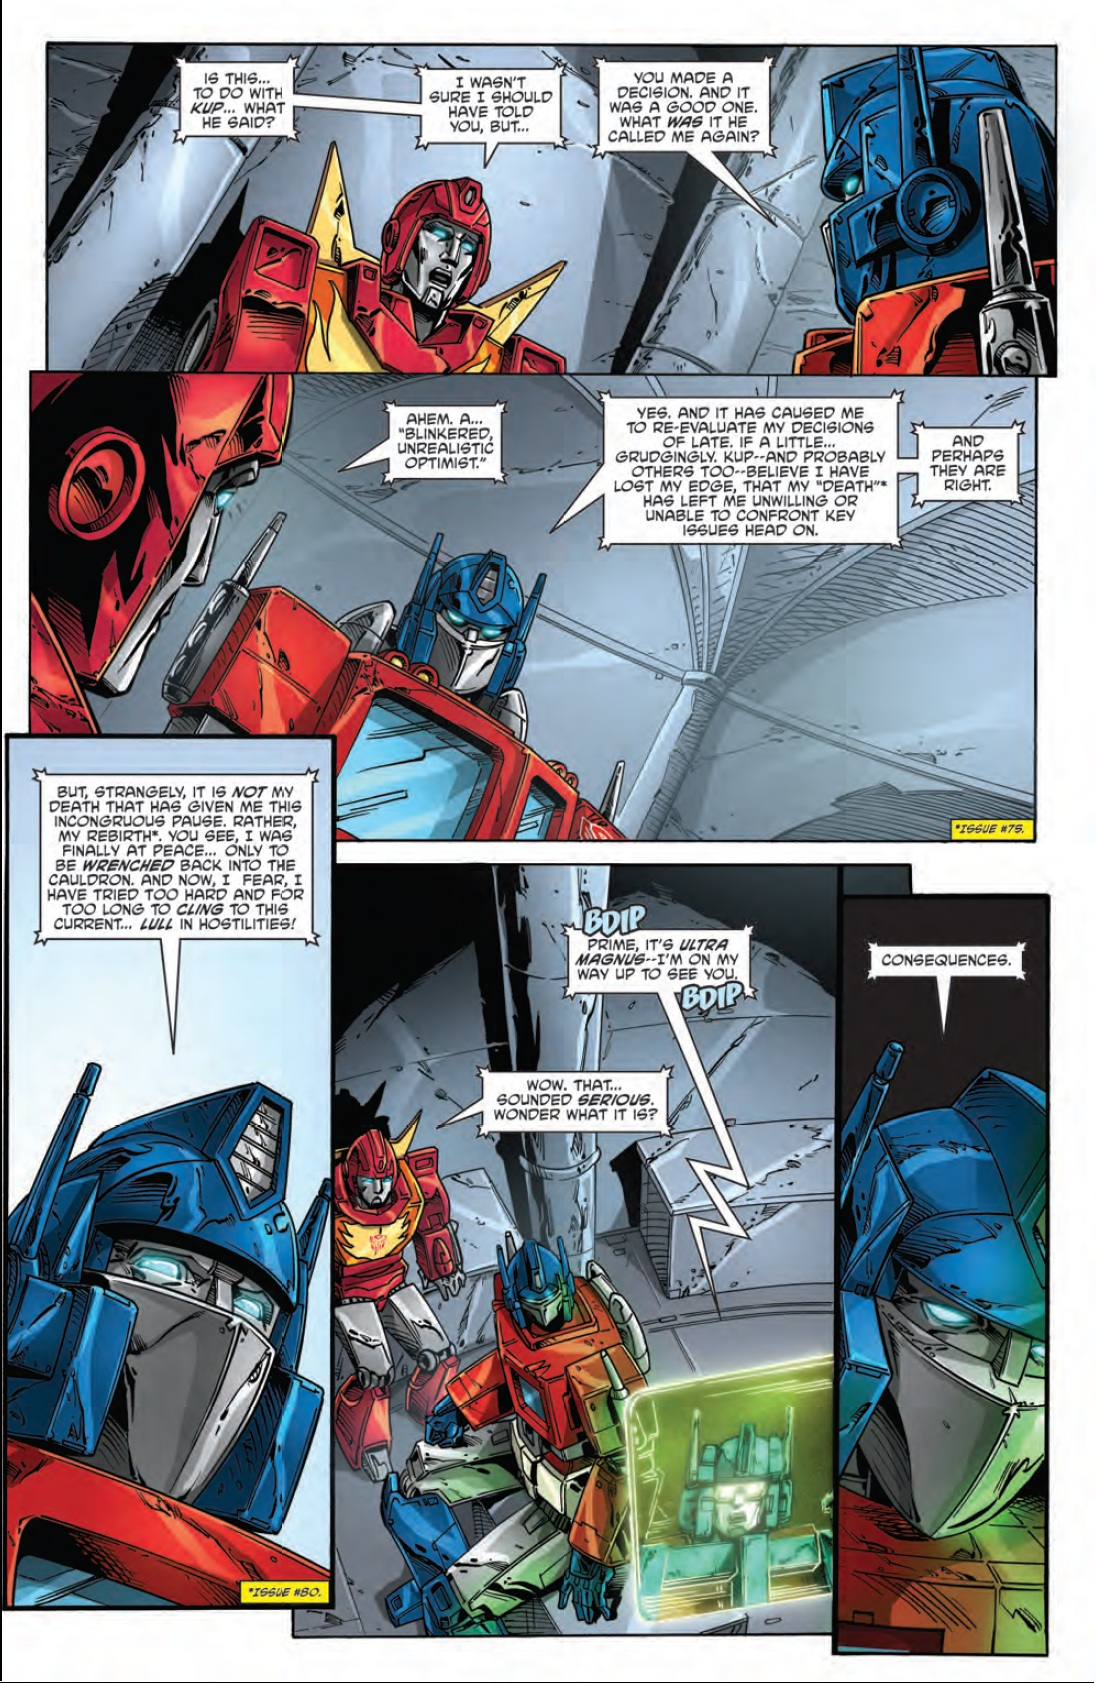 Transformers: Regeneration One #83 Preview